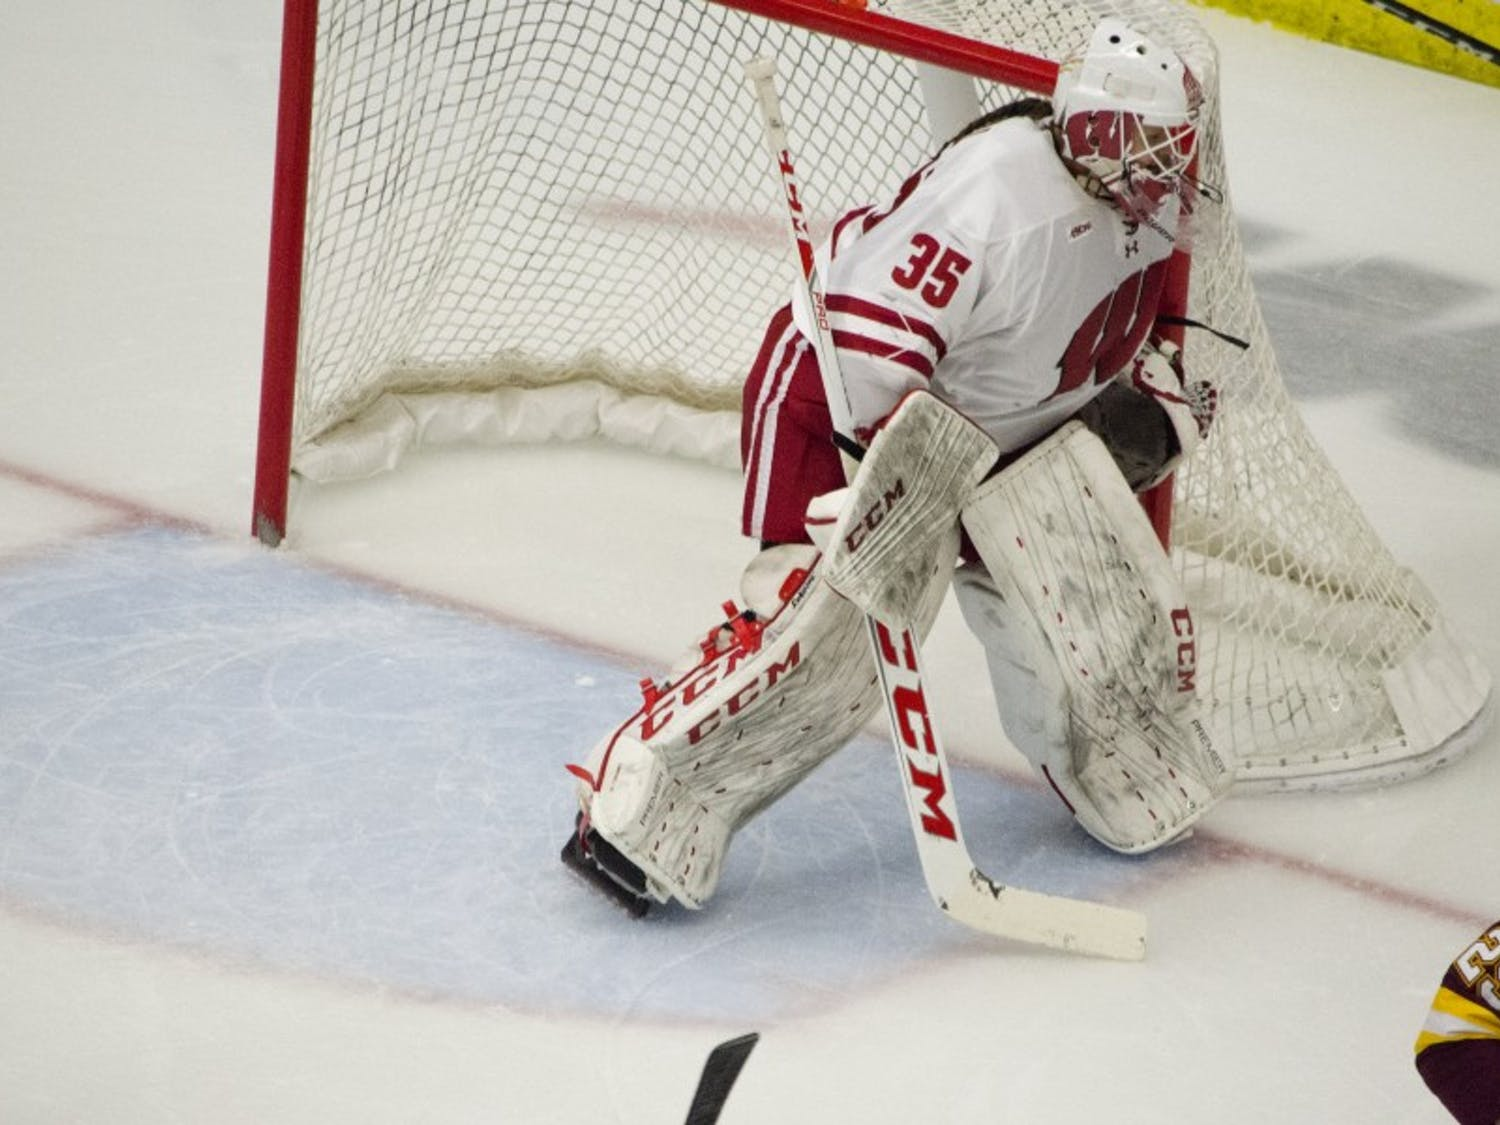 Kristen Campbell made a season-high 30 saves, including 18 in the third period, to hold off the Gophers on Sunday.